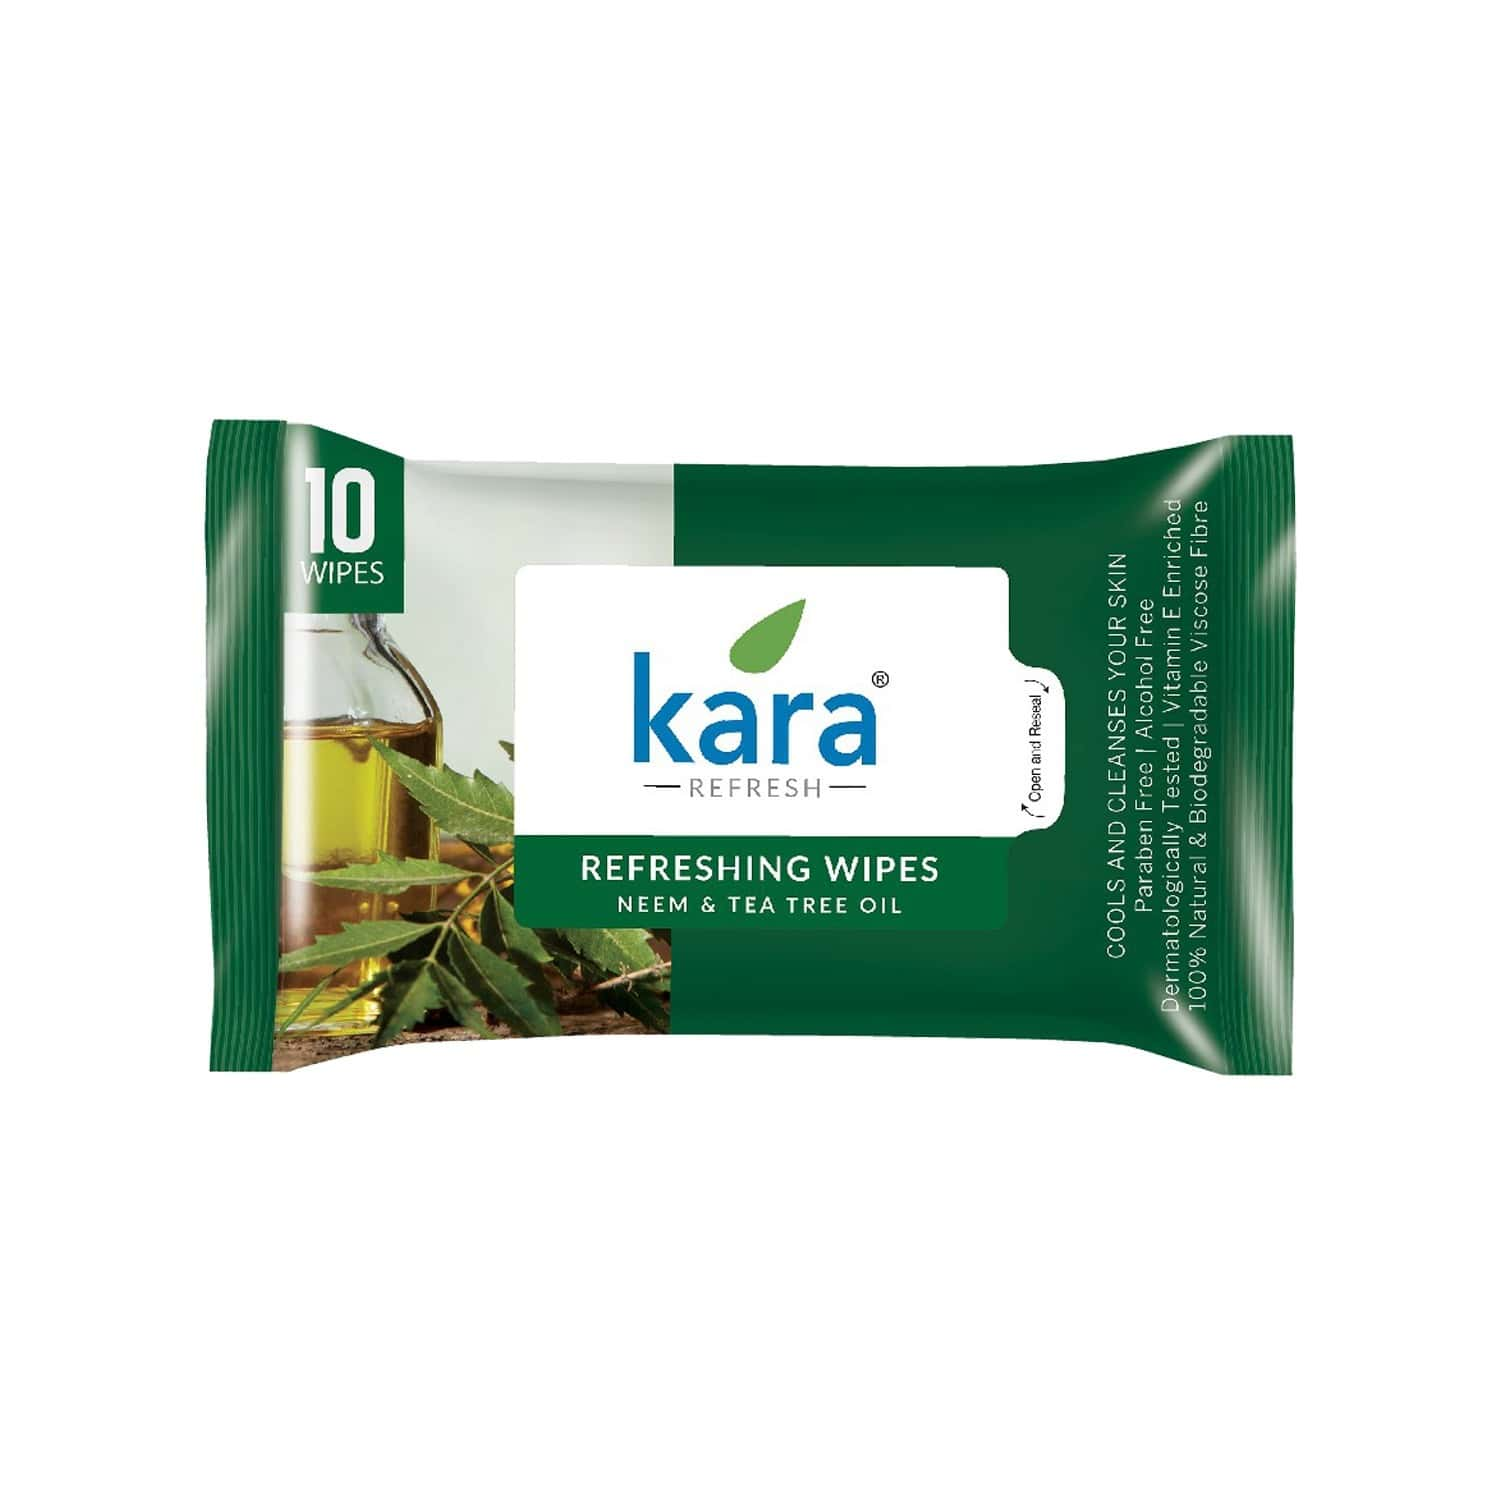 Kara Cleansing And Refreshing Neem And Tea Tree Oil Face Wipes  Packet Of 10